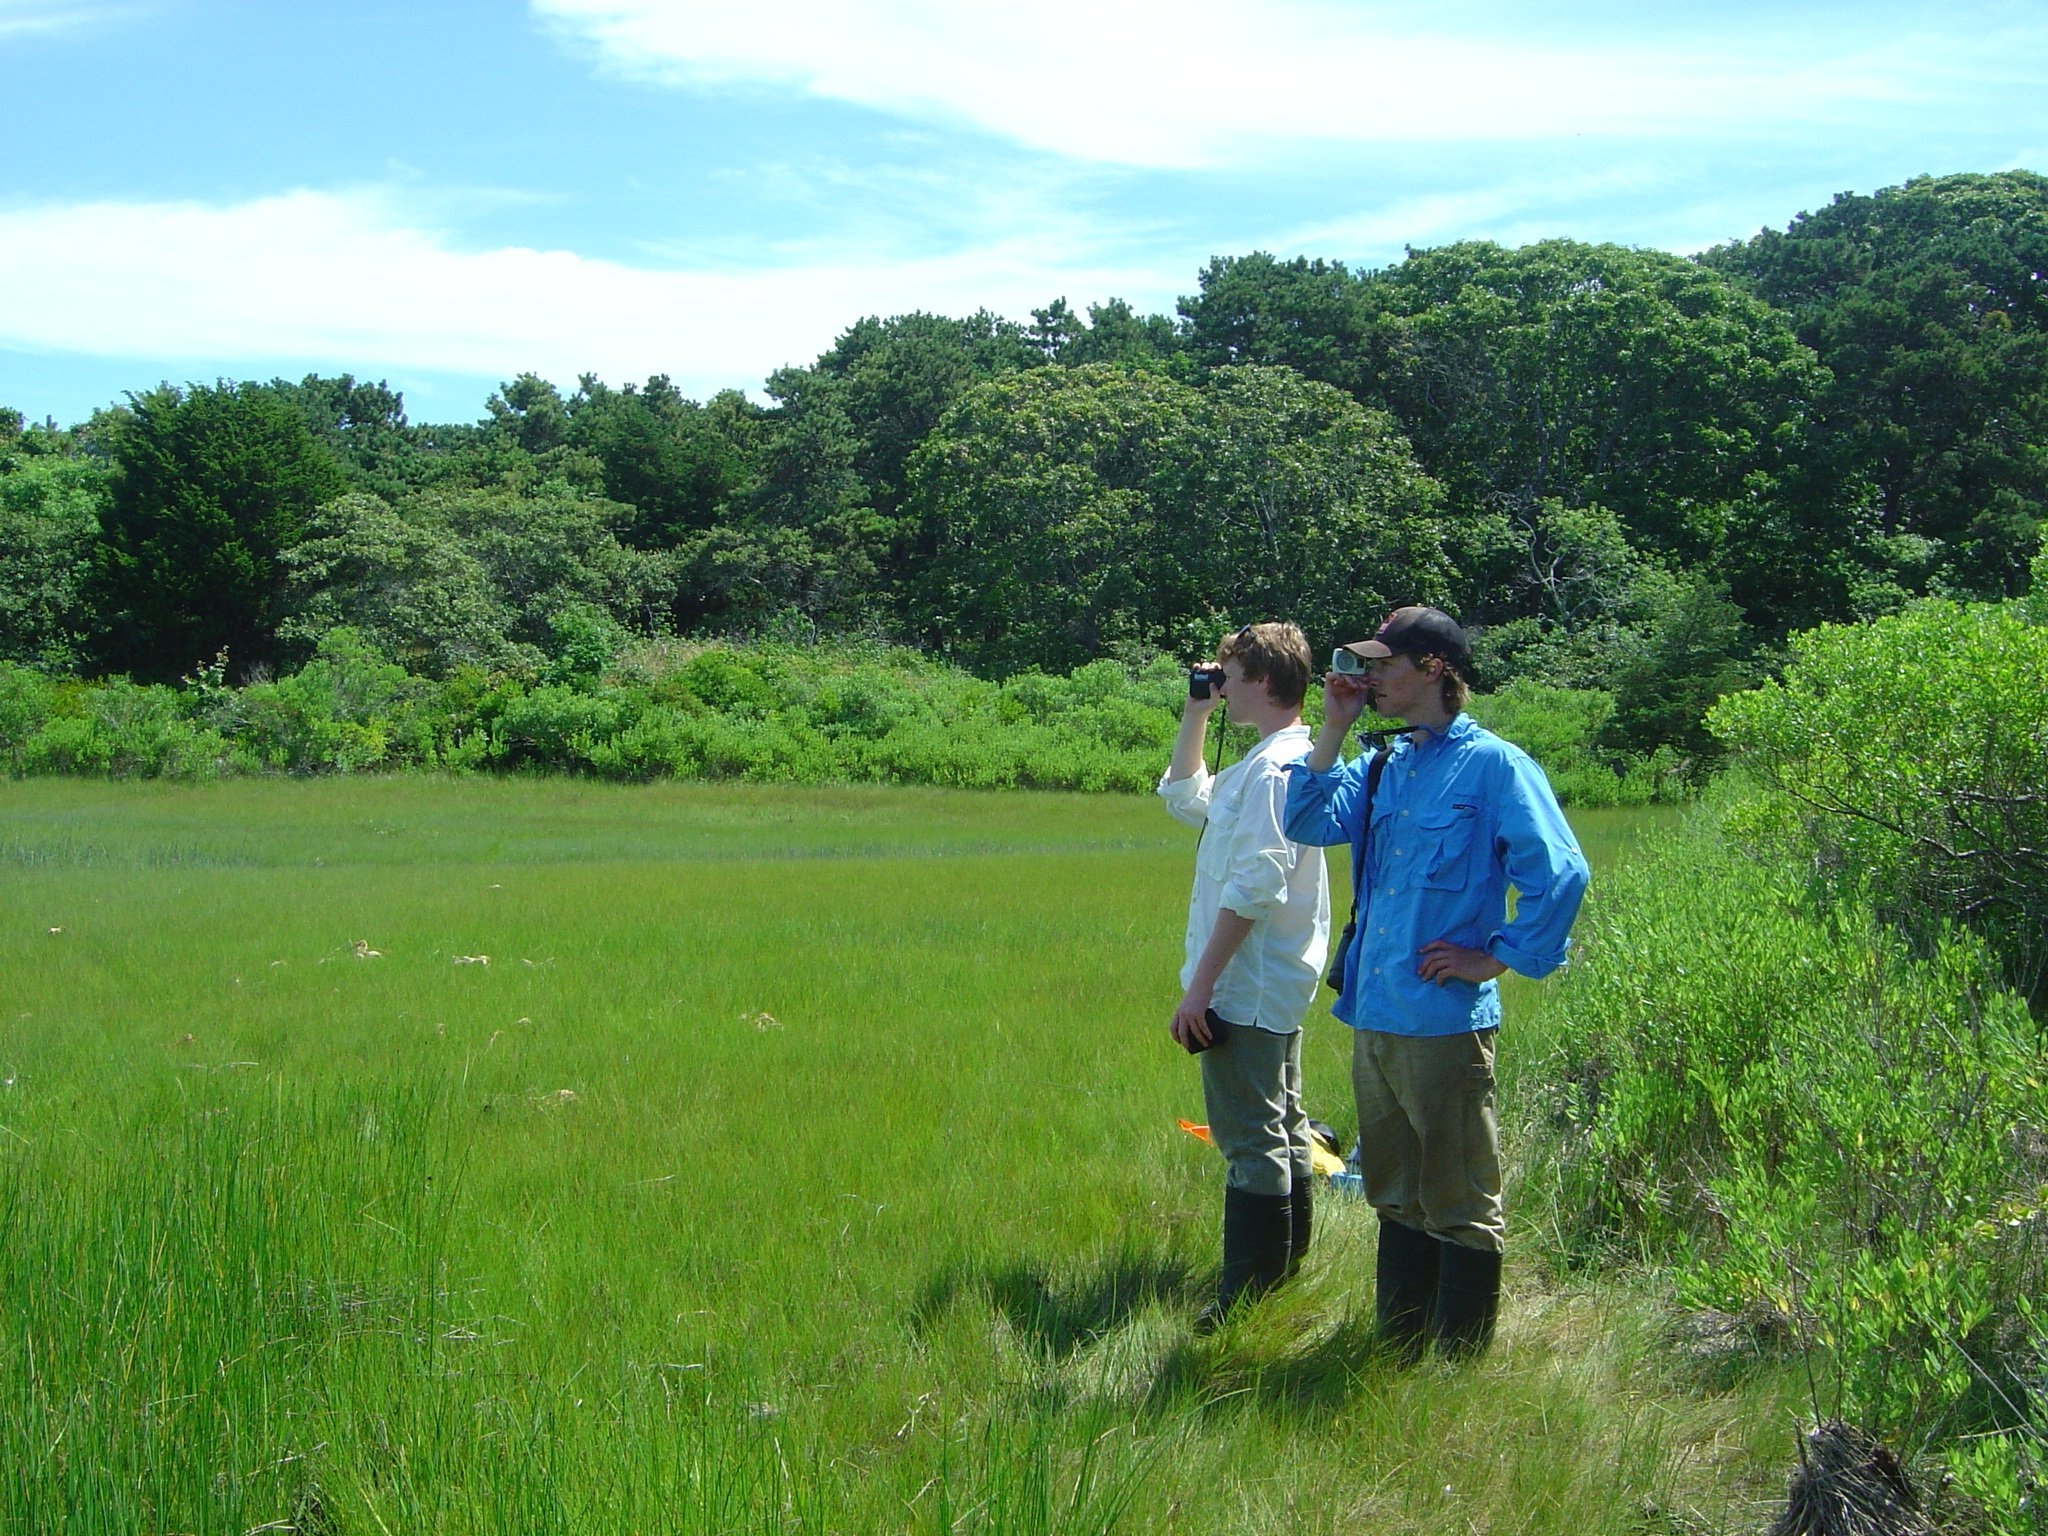 Middlebury Conservation Biology Students Luke Elder and Max Hoffman assisted with habitat assessment for some surveys